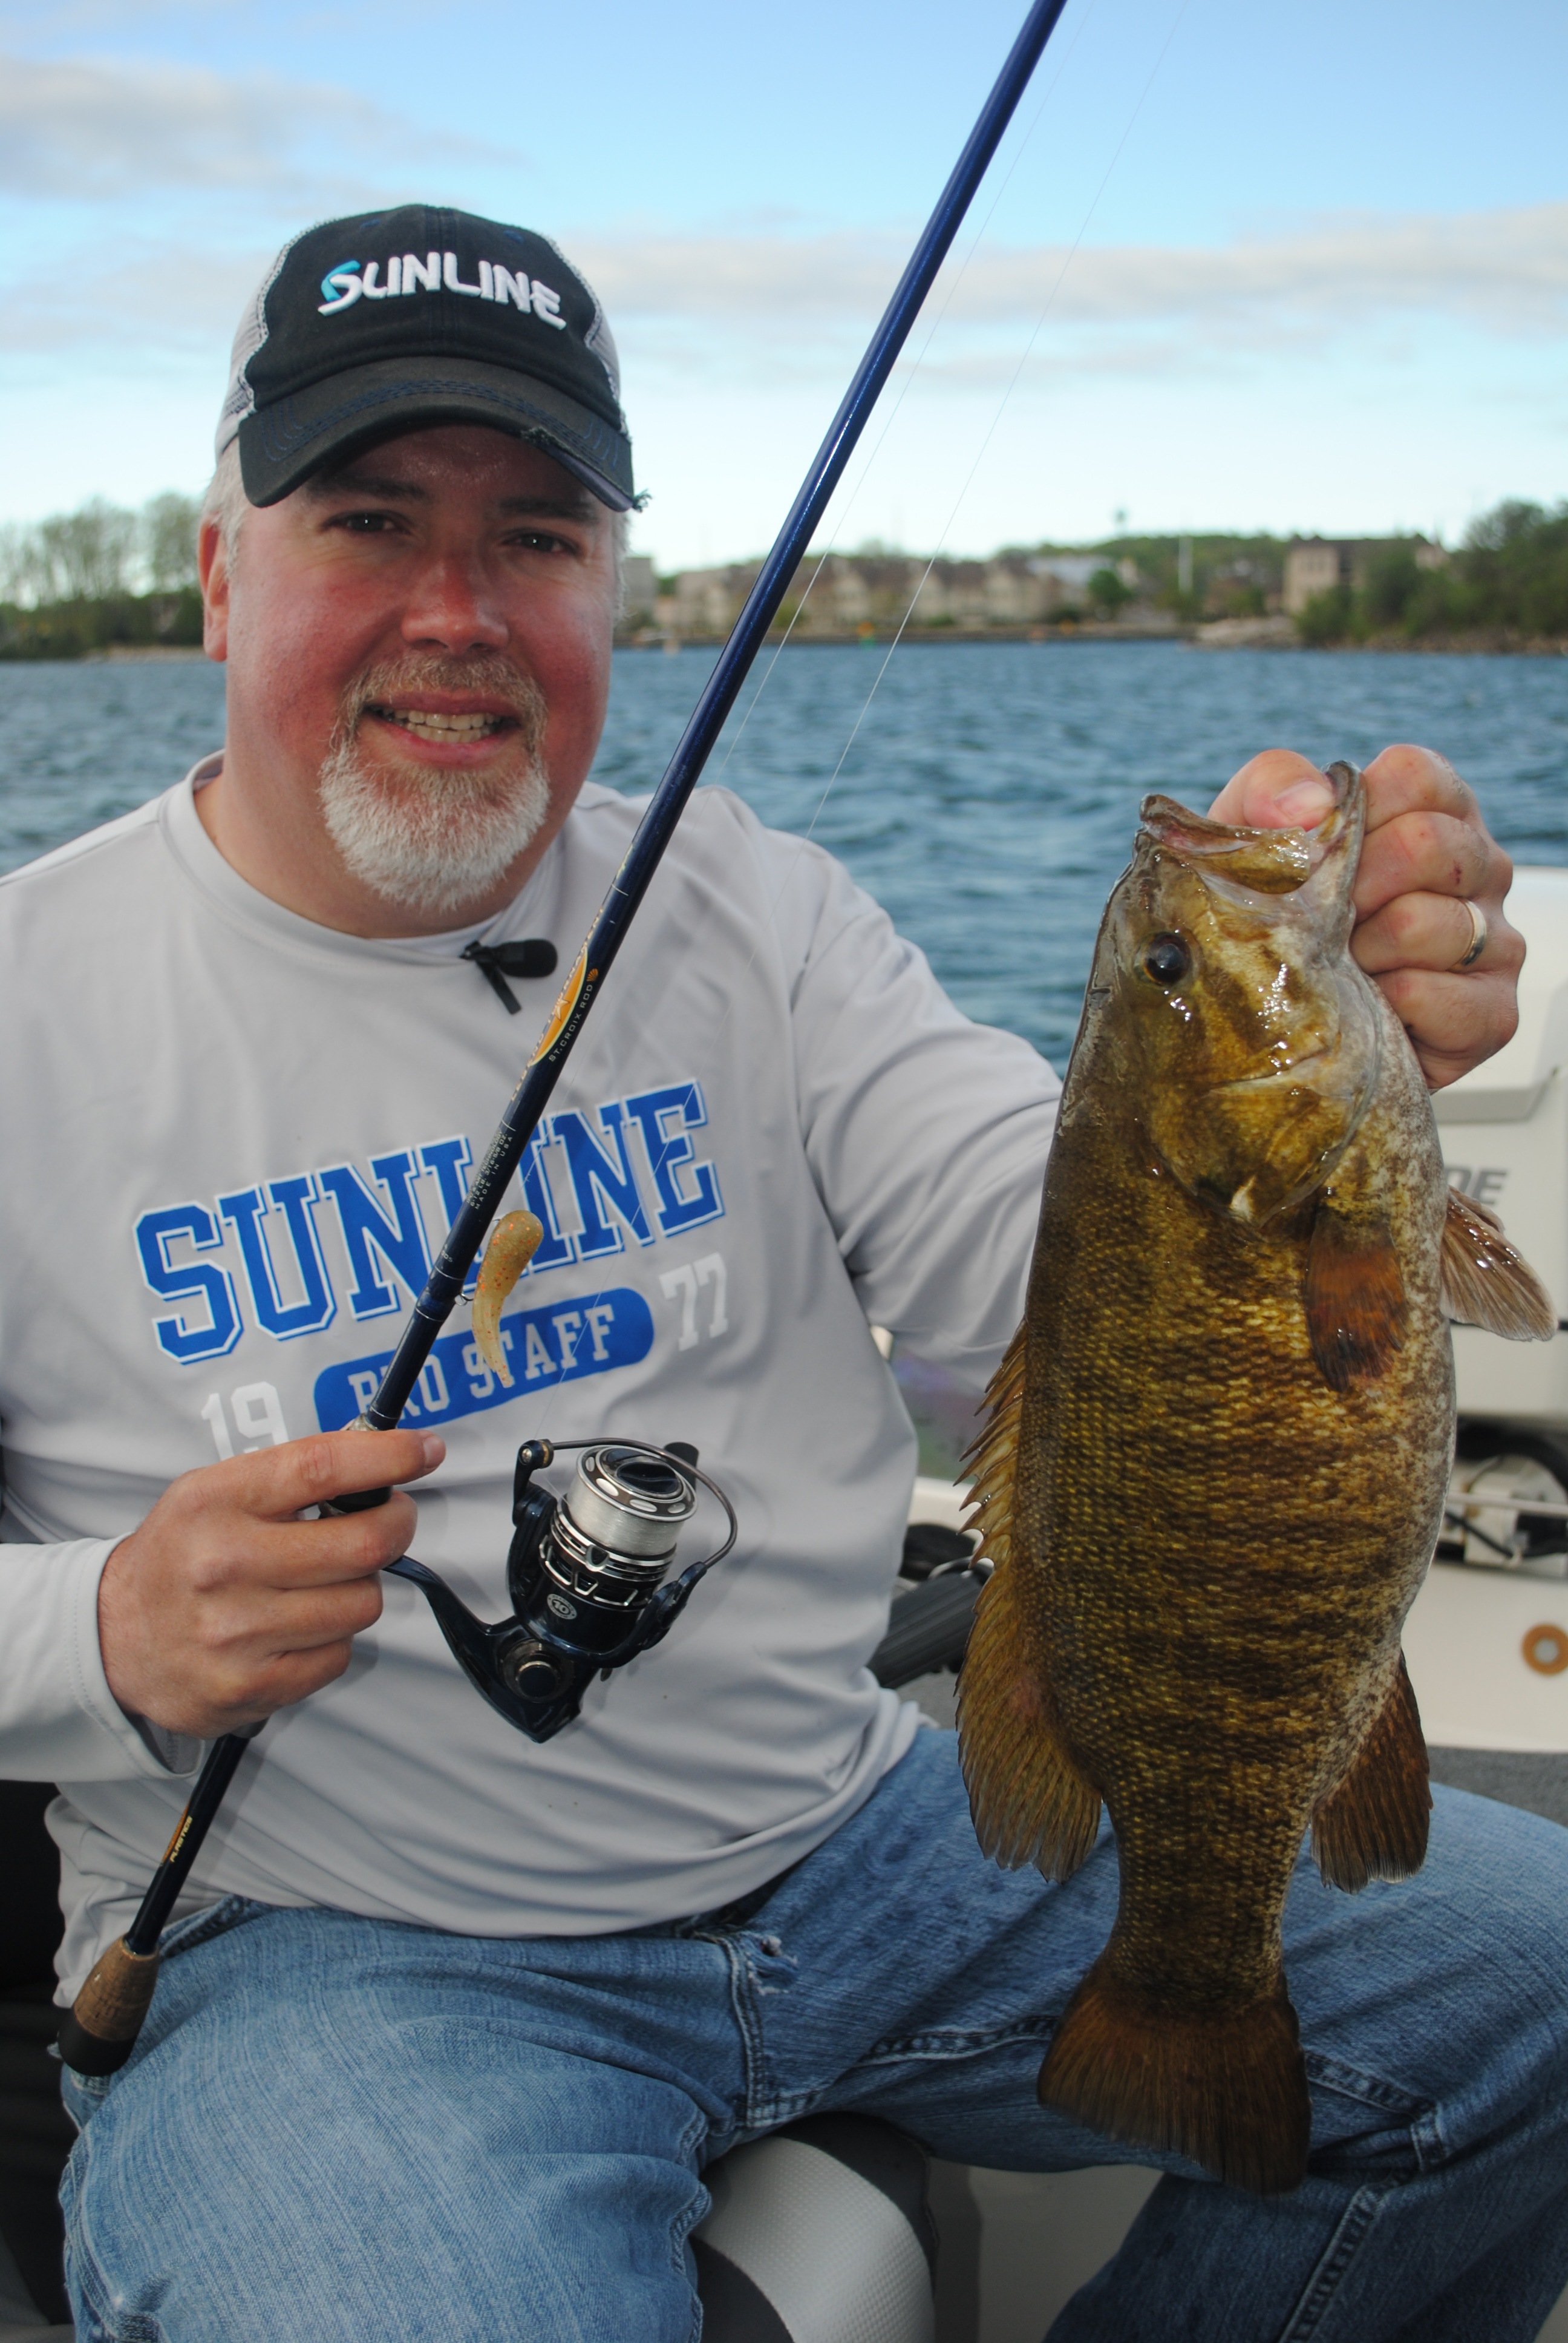 Mike Gottheardt got this smallmouth in the boat quickly with a net, then got his bait back in the water quickly in search of another bass.